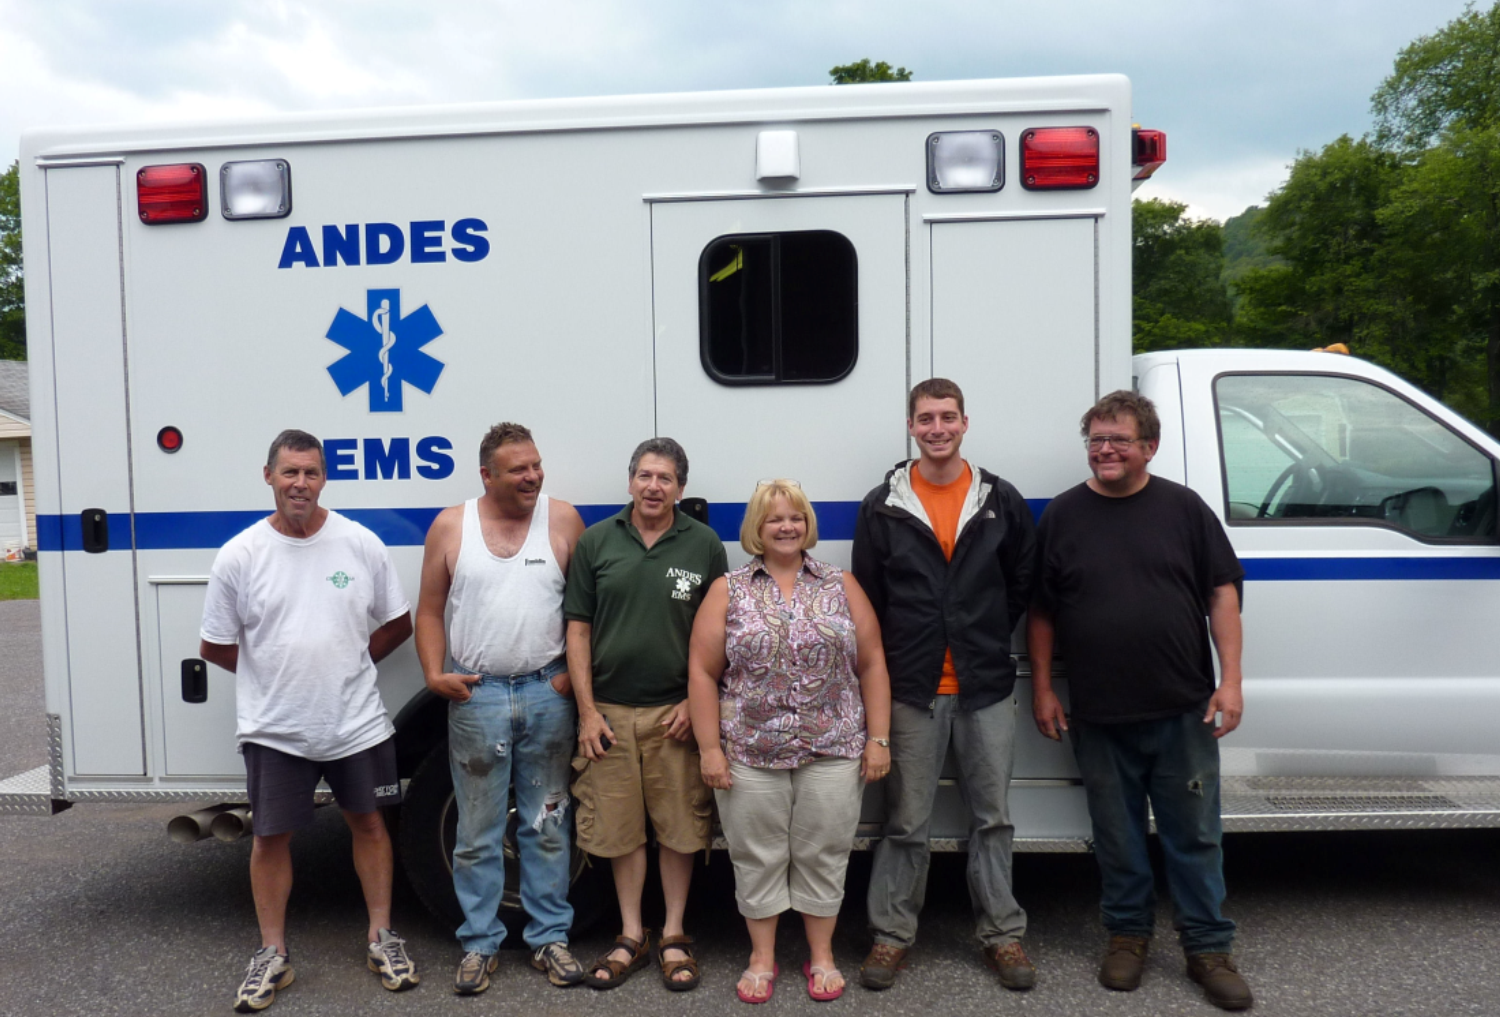 ANDES GETS A NEW AMBULANCE - August 2009